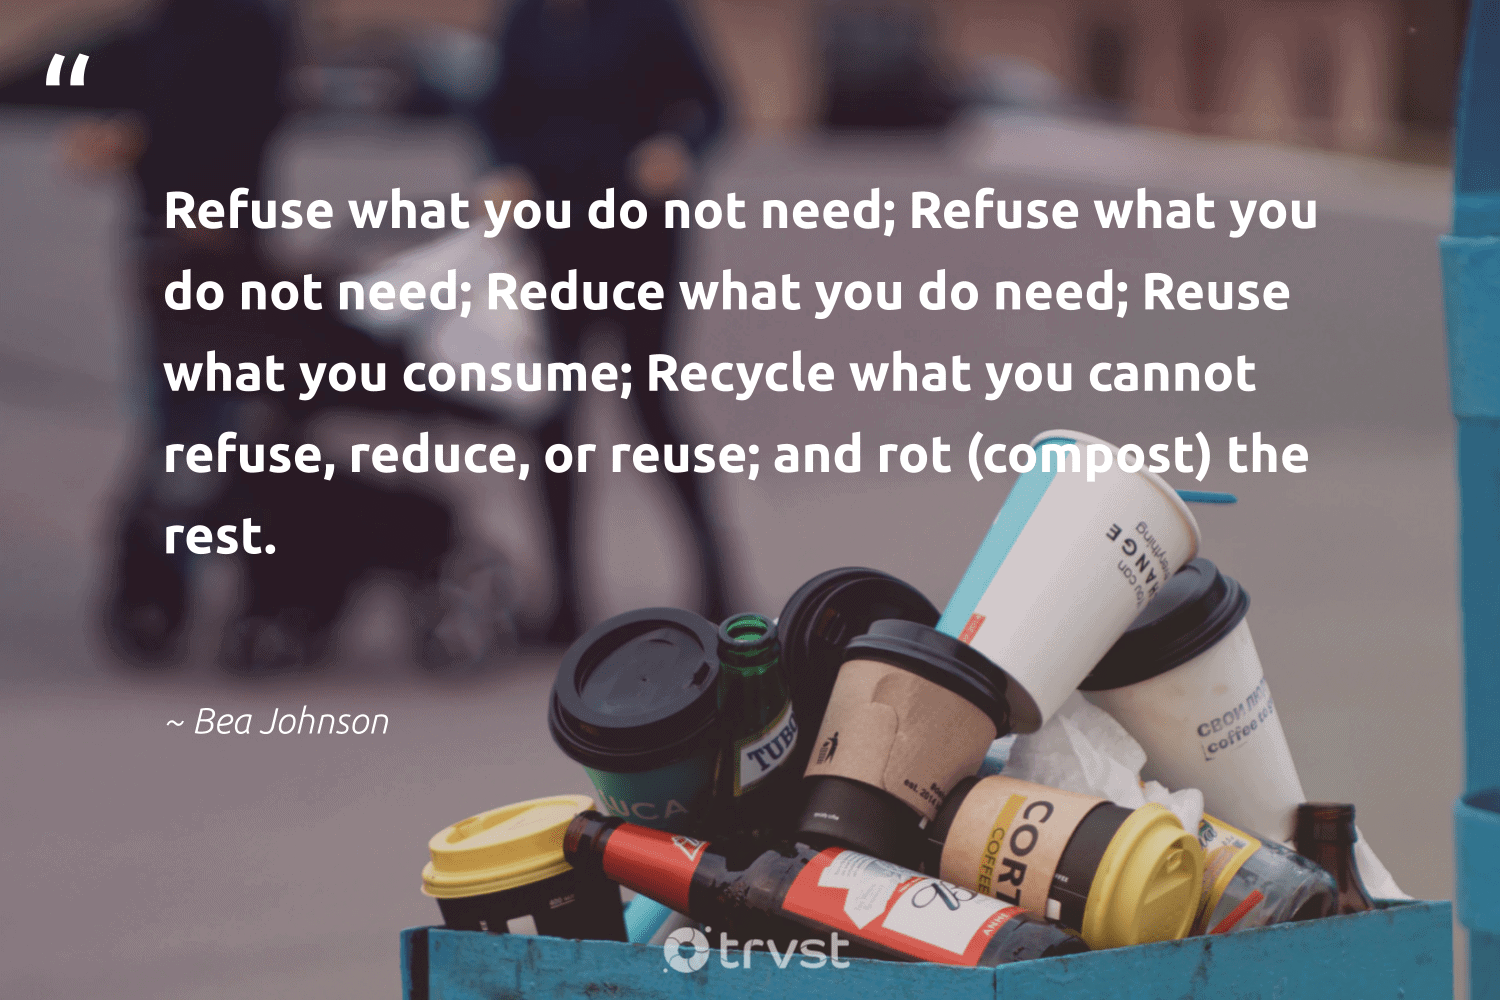 Refuse what you do not need; reduce what you do need; reuse what you consume; recycle what you cannot refuse, reduce, or reuse; and rot (compost) the rest.